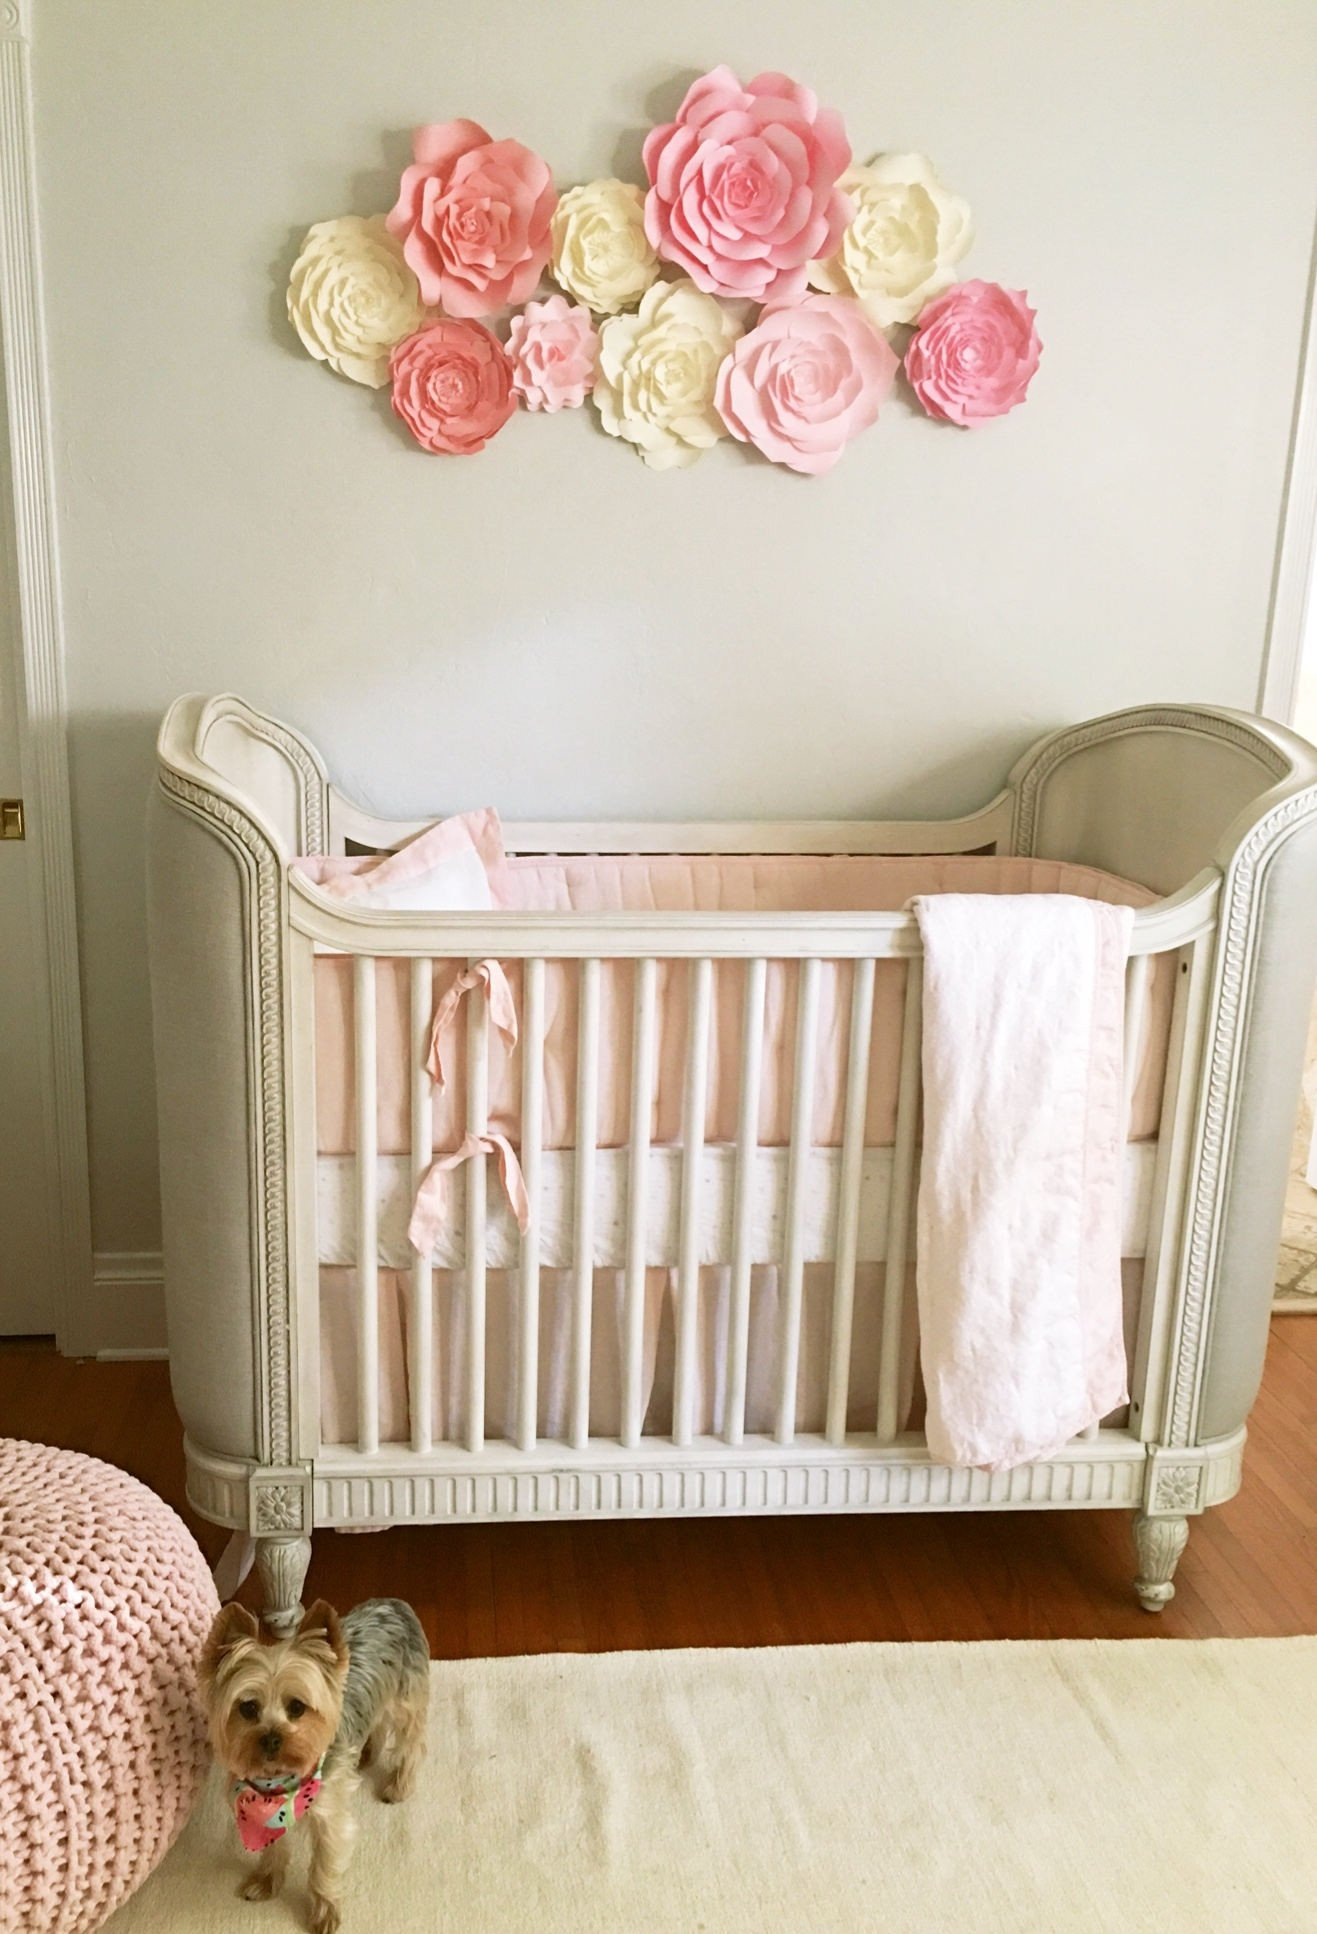 Wall Decor for Baby Rooms Elegant Baby Nursery Wall Decor Paper Flowers for Girls Nursery